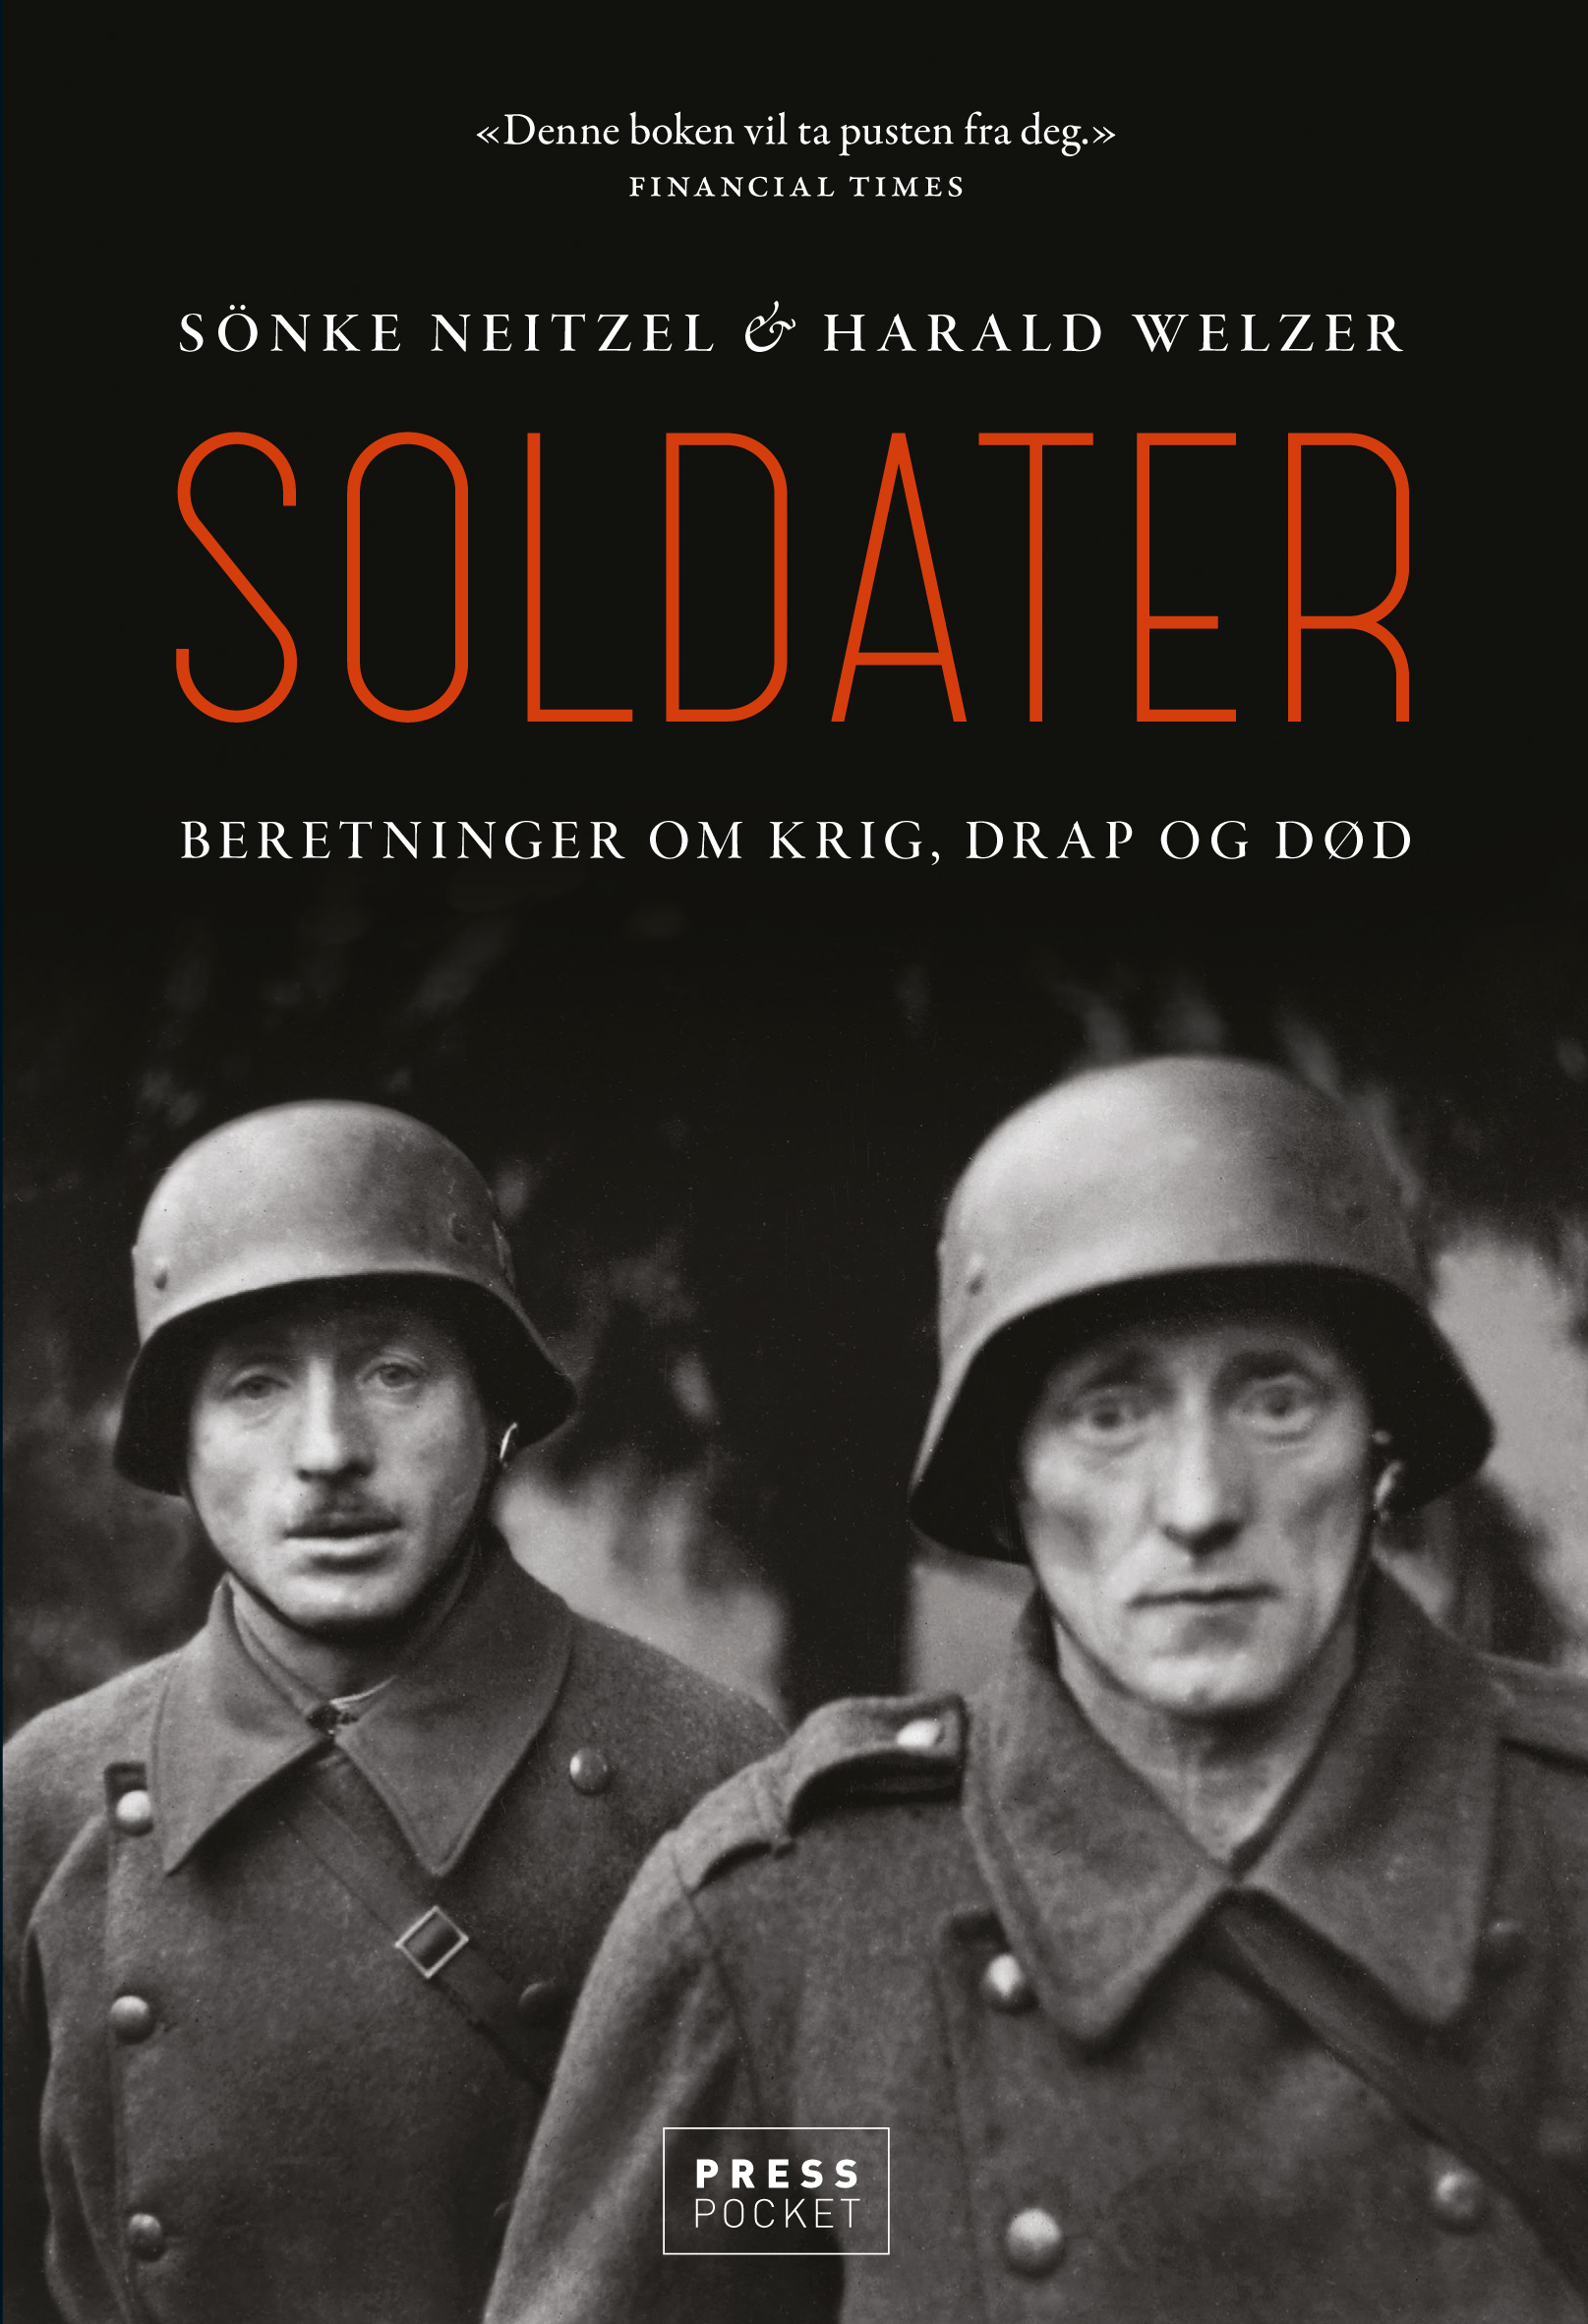 Soldater (pocket) - ISBN 9788275476287 - Forlaget Press